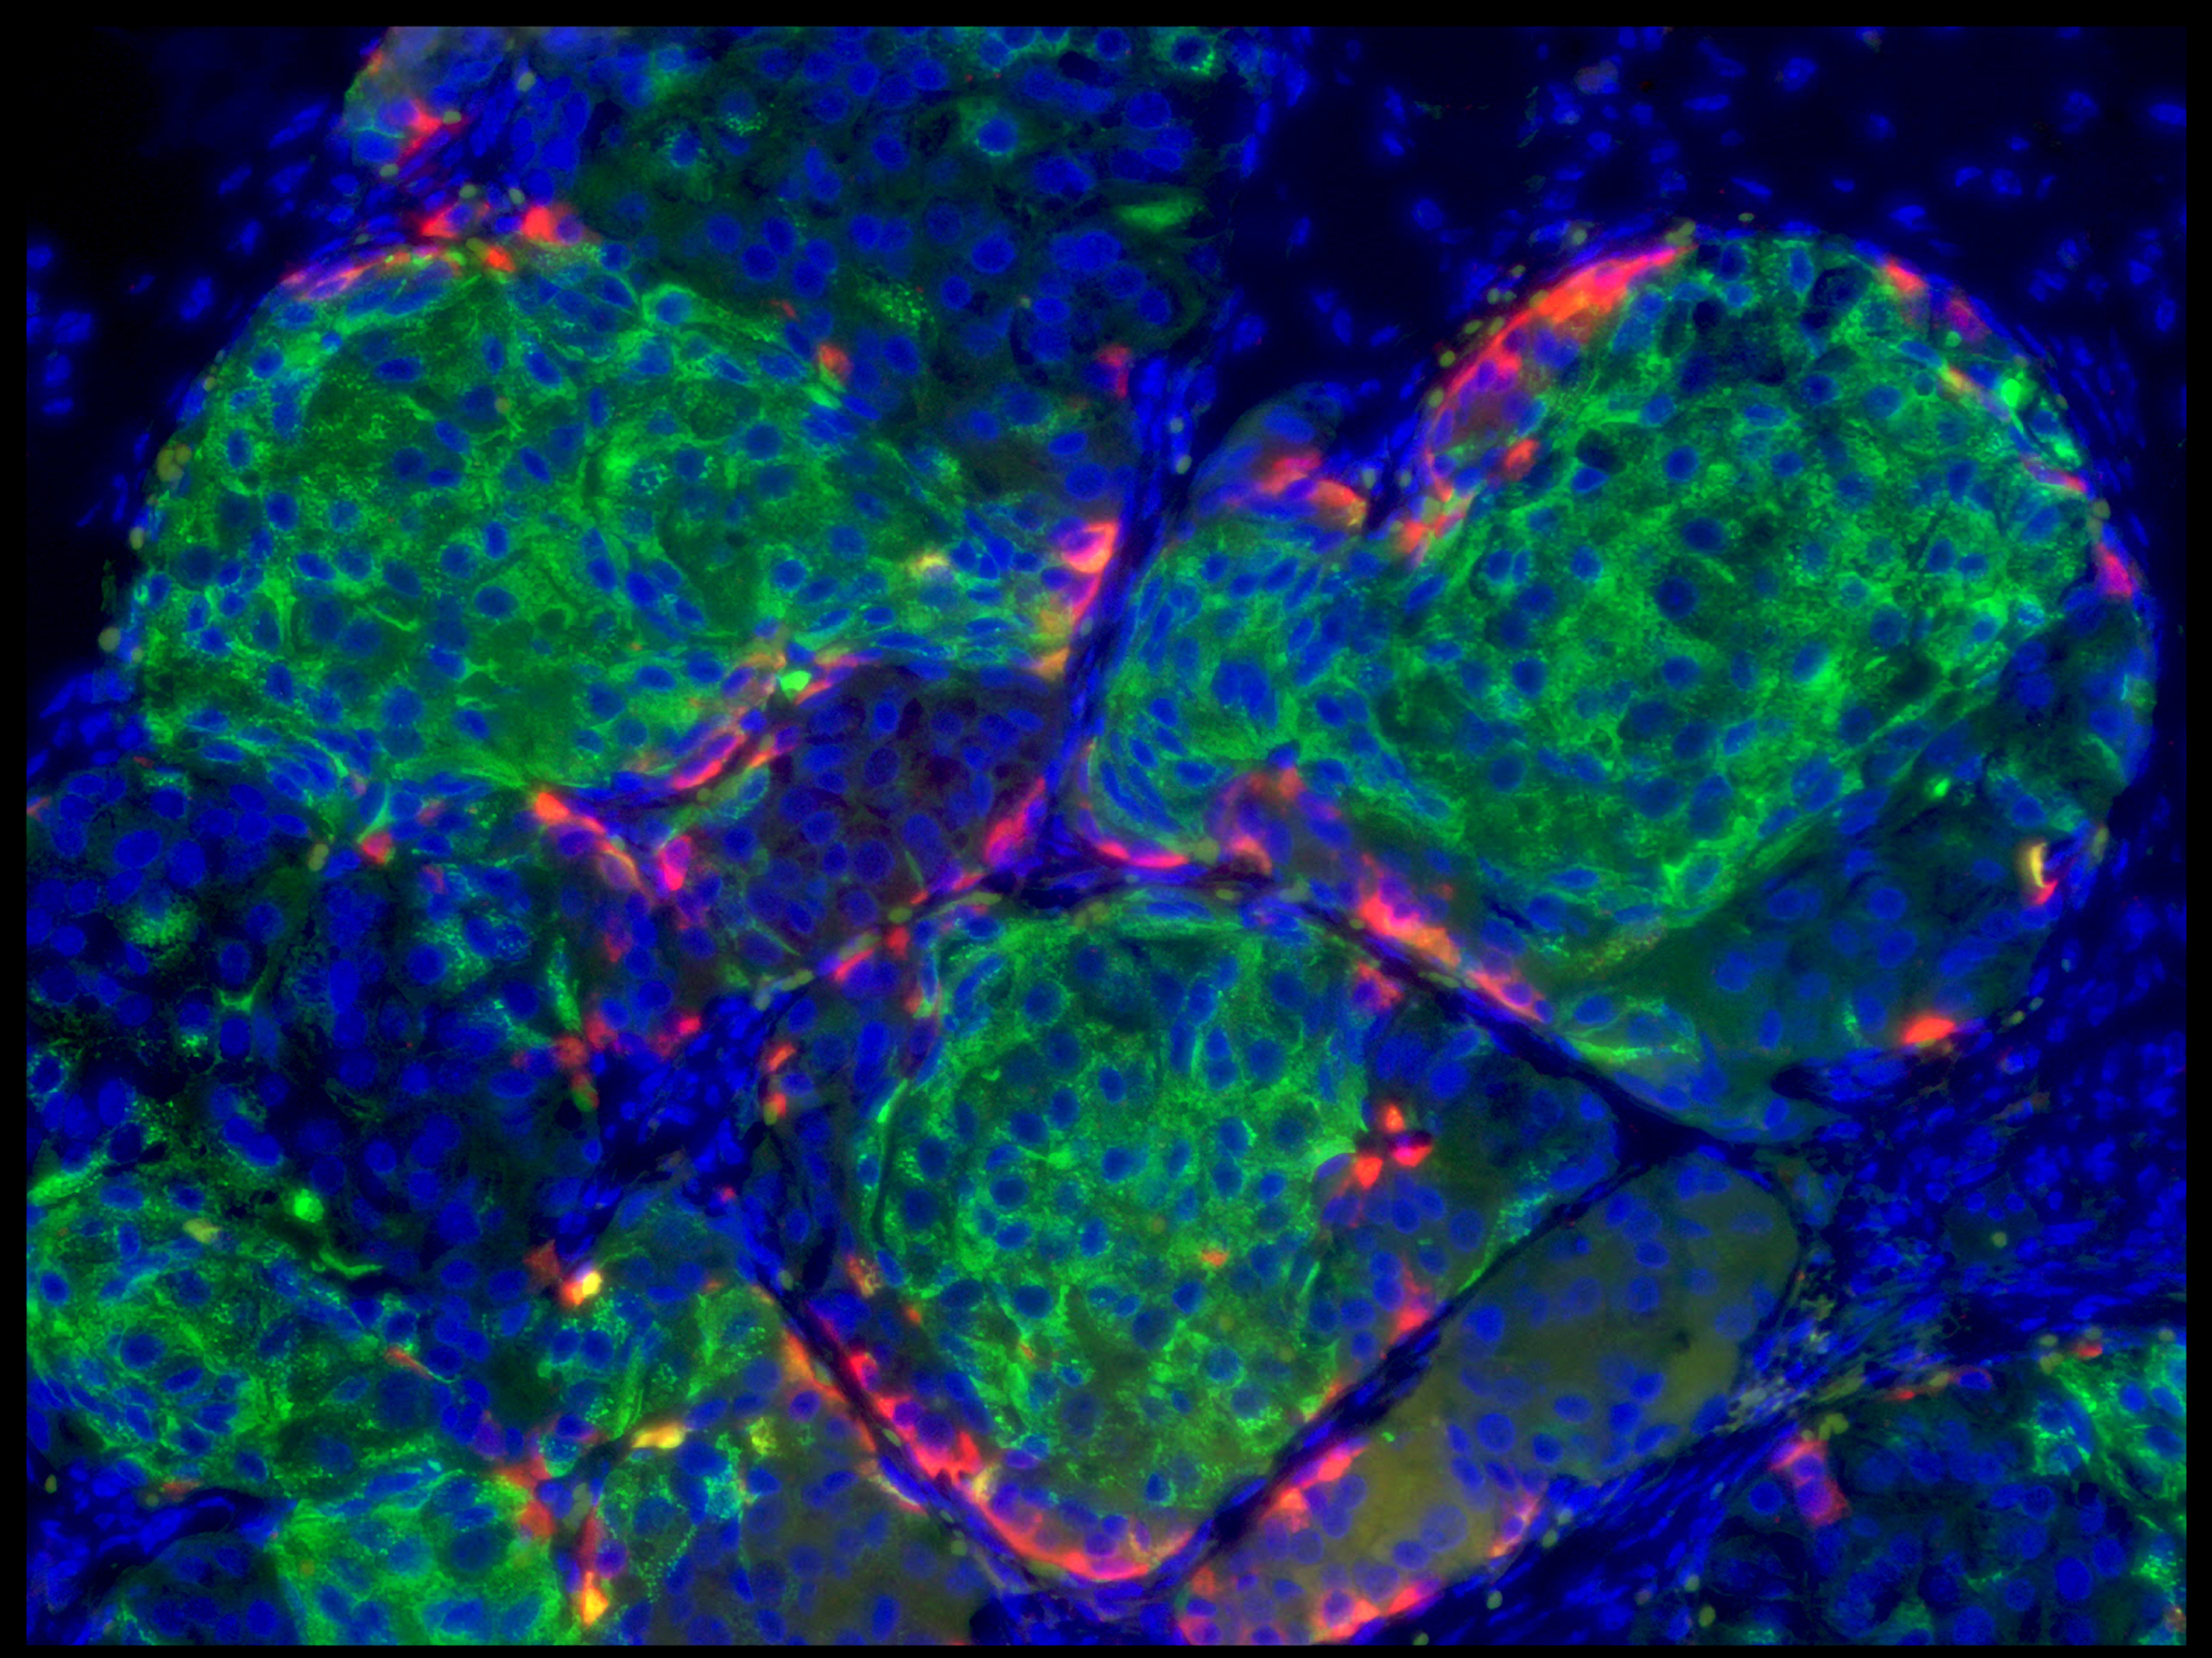 Scientists Coax Human Embryonic Stem Cells Into Making Insulin